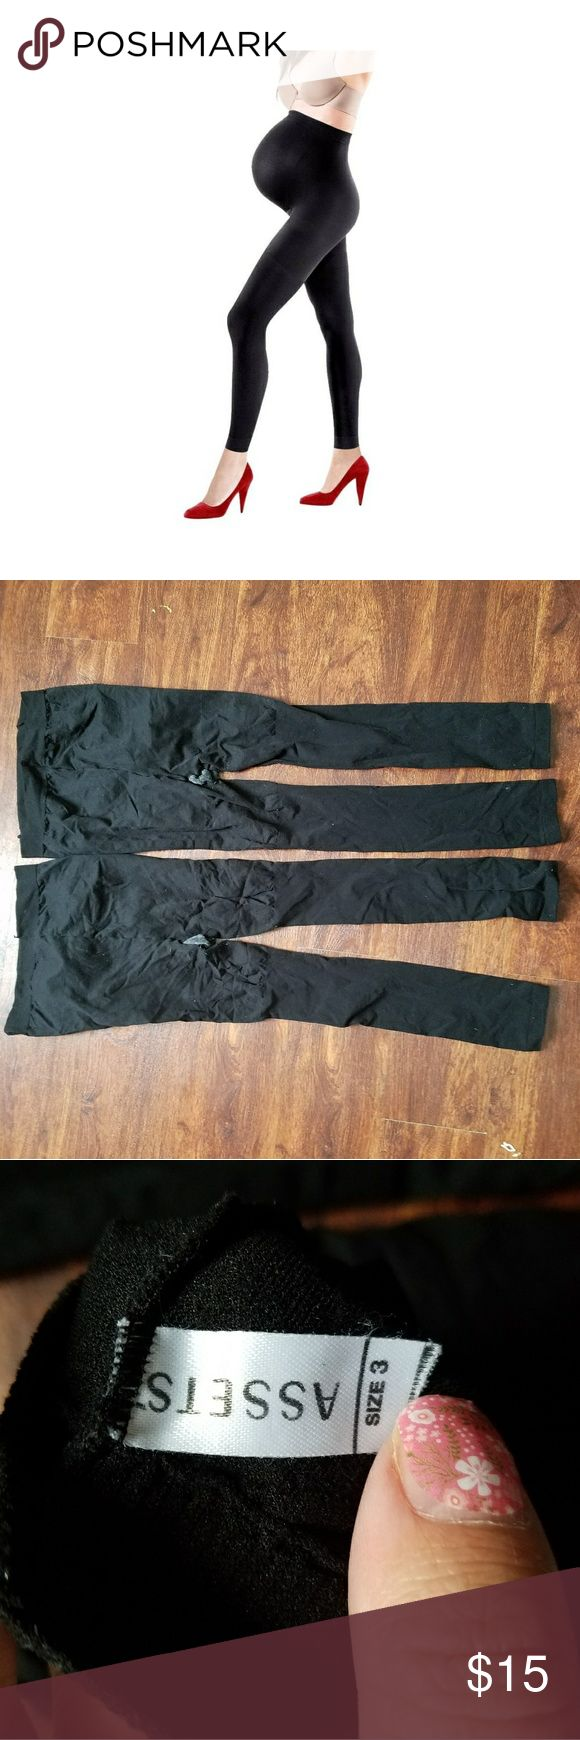 Assets by spanx maternity leggings footless sz 3 Most comfortable and useful thing i wore all pregnancy. I couldnt have made it through without them. No wear. They look new. Black footless support tights/leggings. Size 3. I have included the size chart from the back of a package but these do not come with packaging.  Questions are welcome. Reasonable offers considered. Discounts in bundles. ASSETS by Sara Blakely Pants Leggings